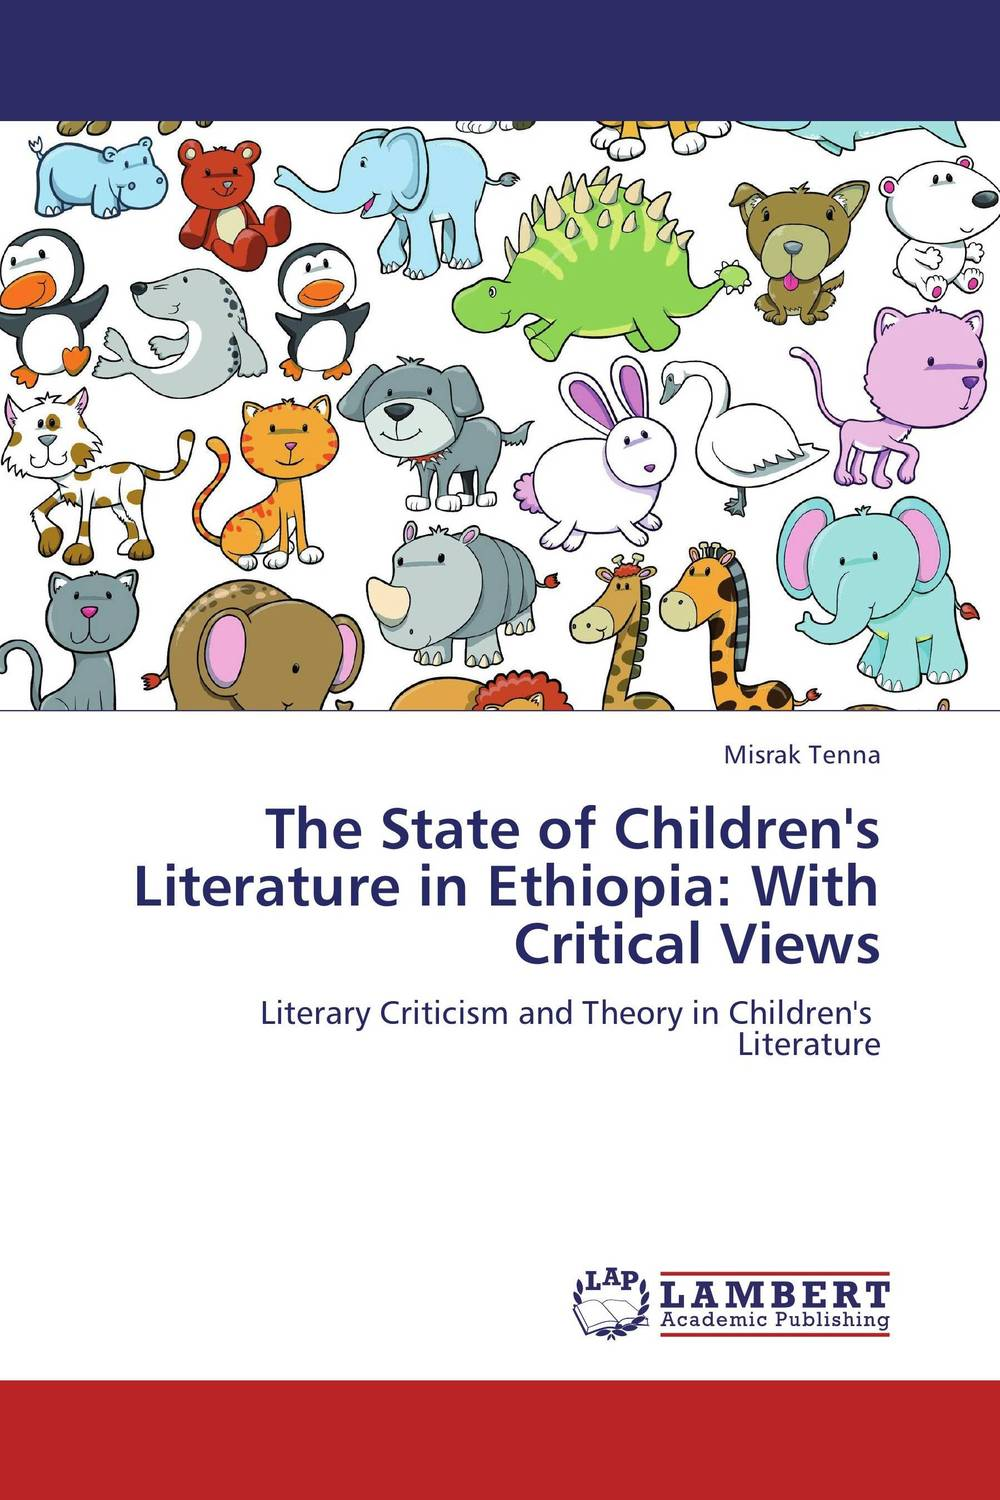 The State of Children's Literature in Ethiopia: With Critical Views